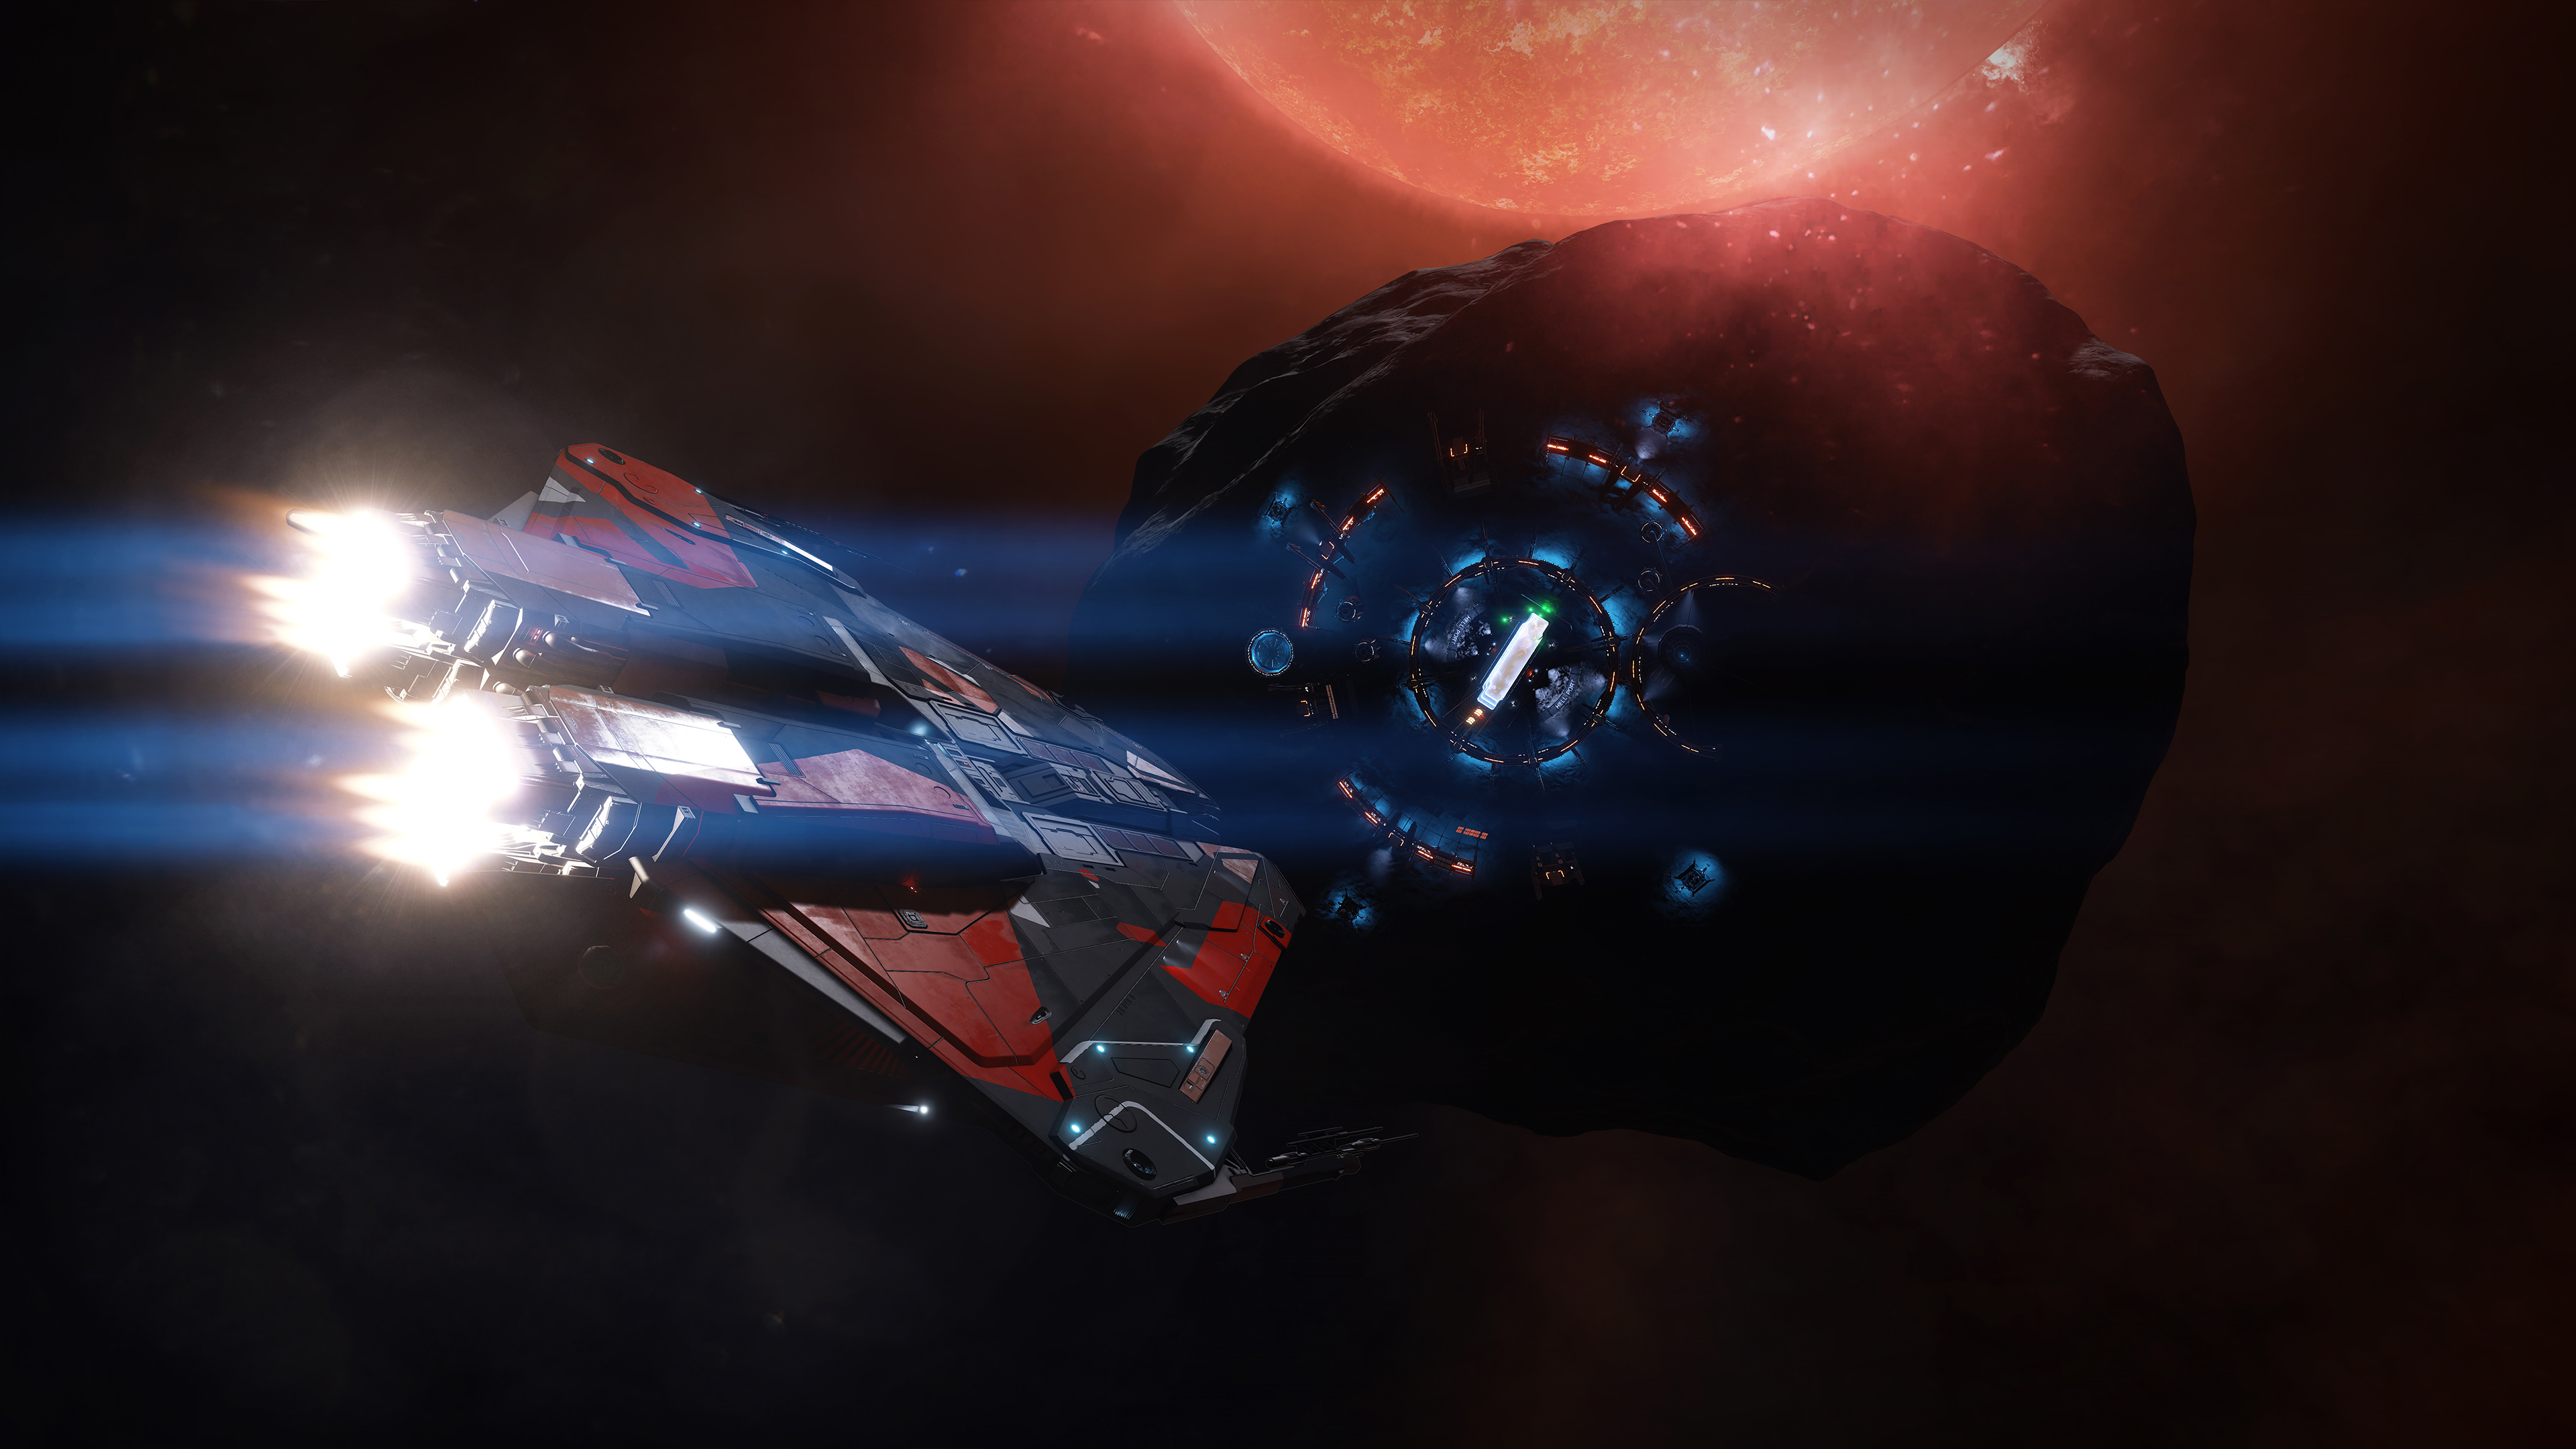 Elite Dangerous hacks are becoming a problem, and Frontier is investigating | PC Gamer